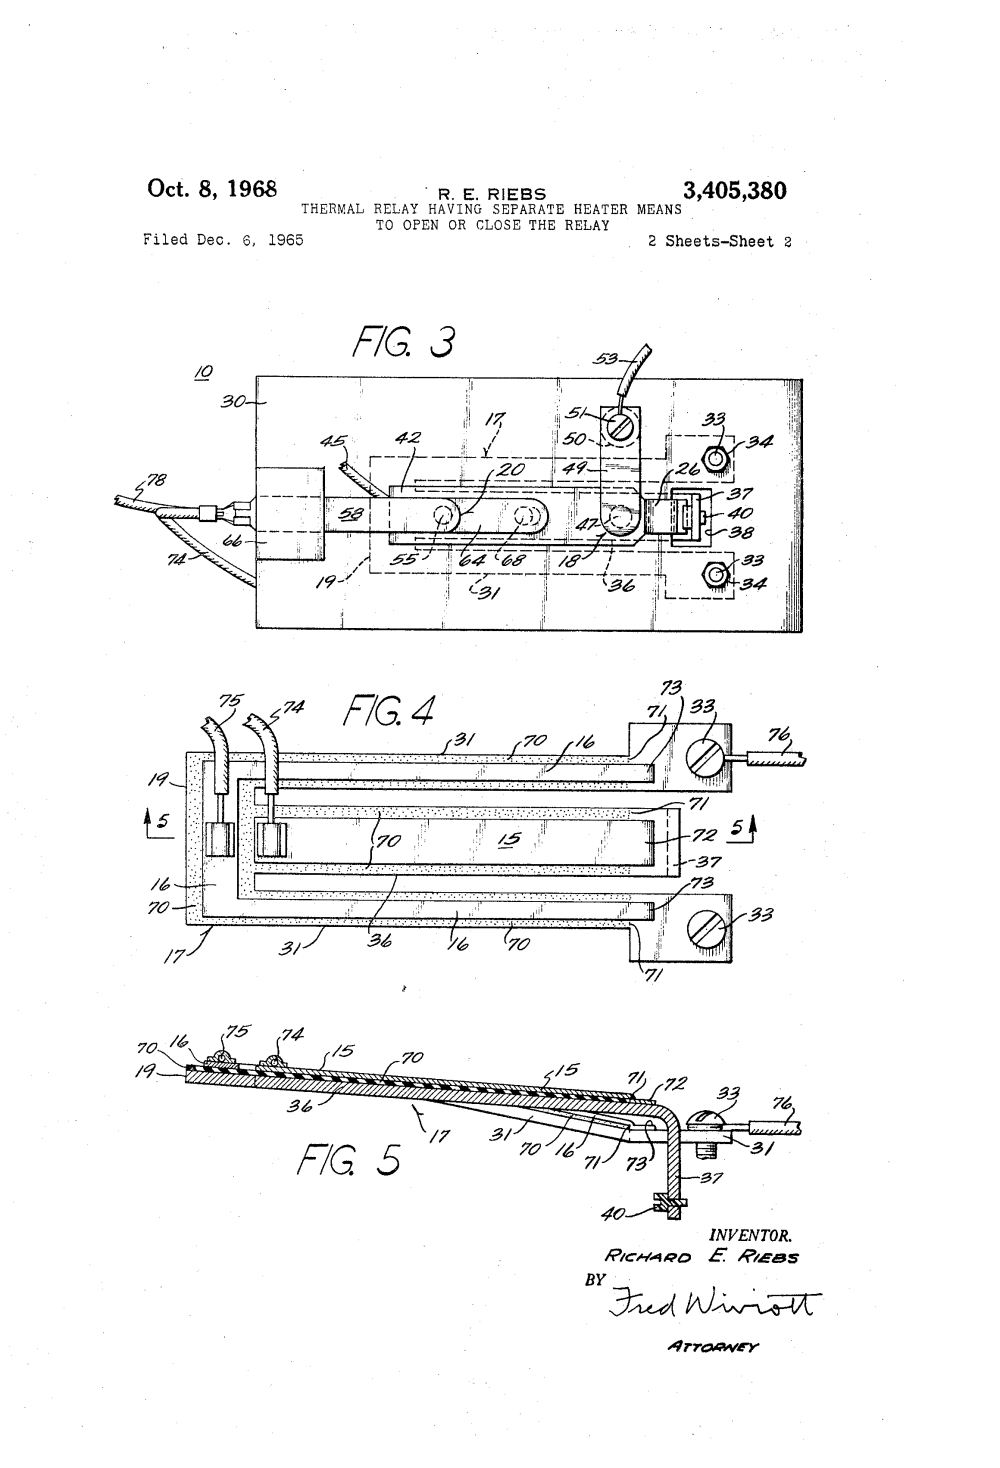 medium resolution of patente us3405380 thermal relay having separate heater means to patent drawing wilder heat oven wiring diagram